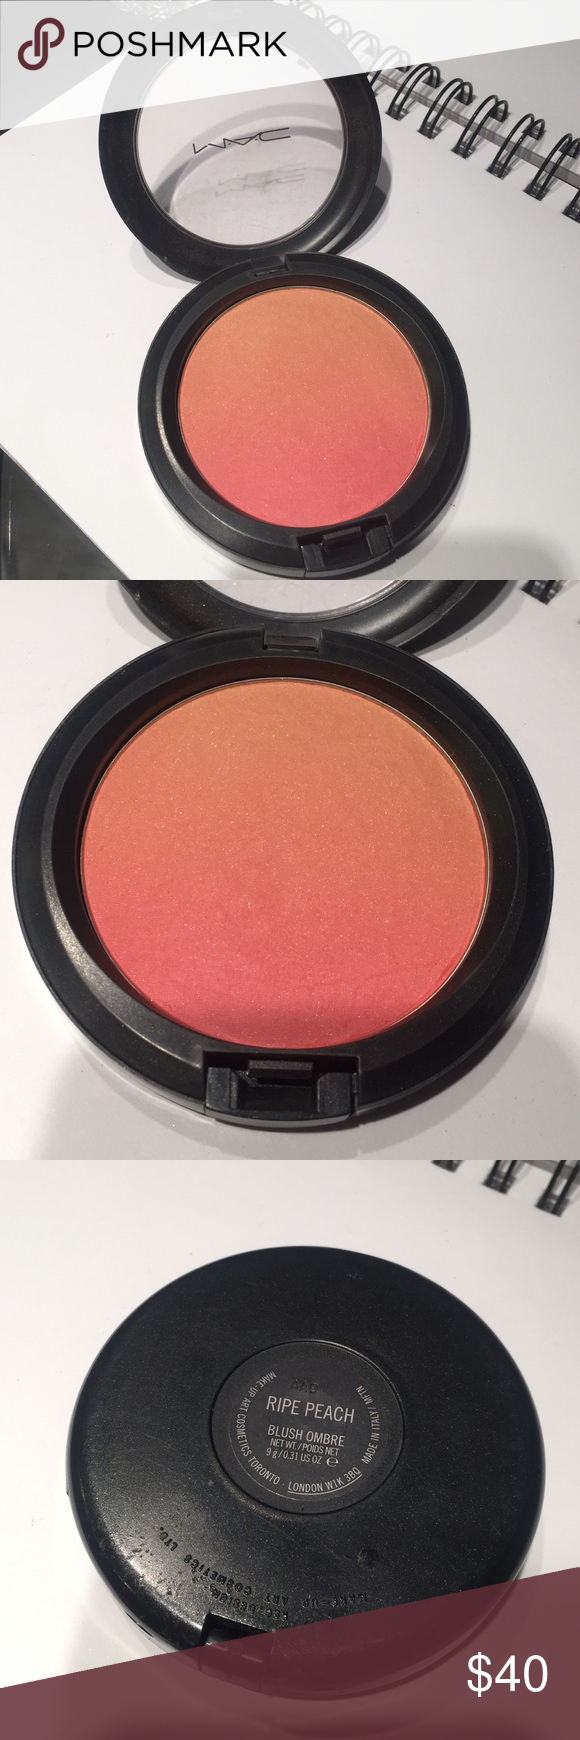 MAC Blush Ombré in Ripe Peach Limited edition, used a few